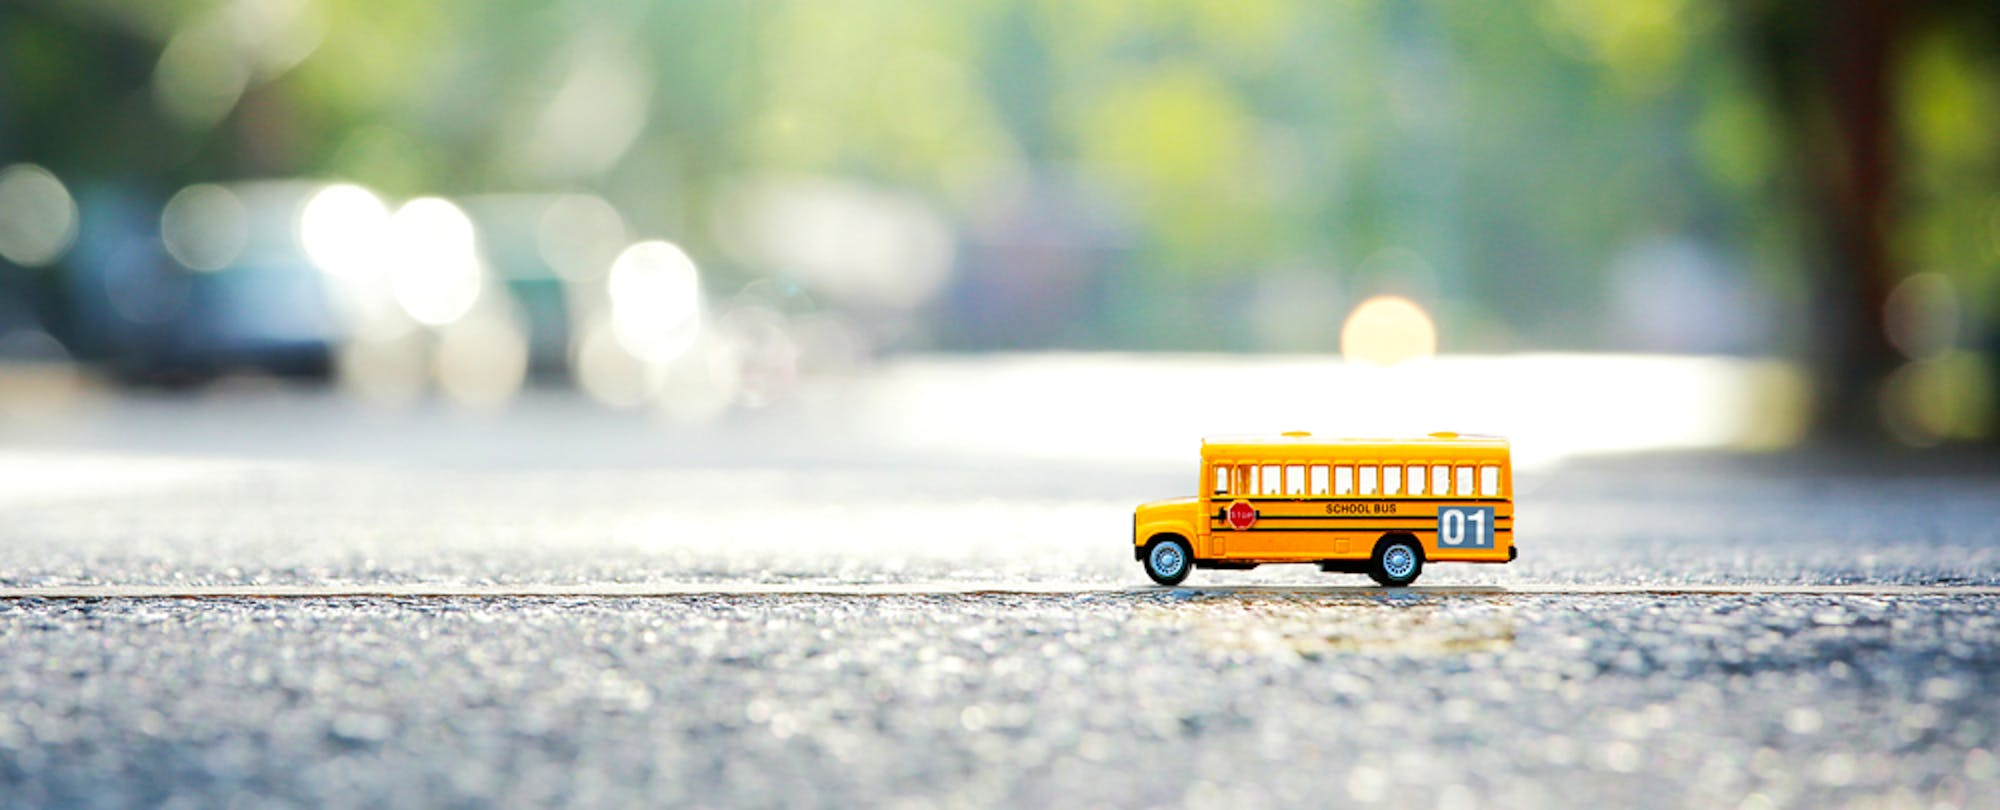 Why Every Edtech Company Should Take Field Trips to Schools